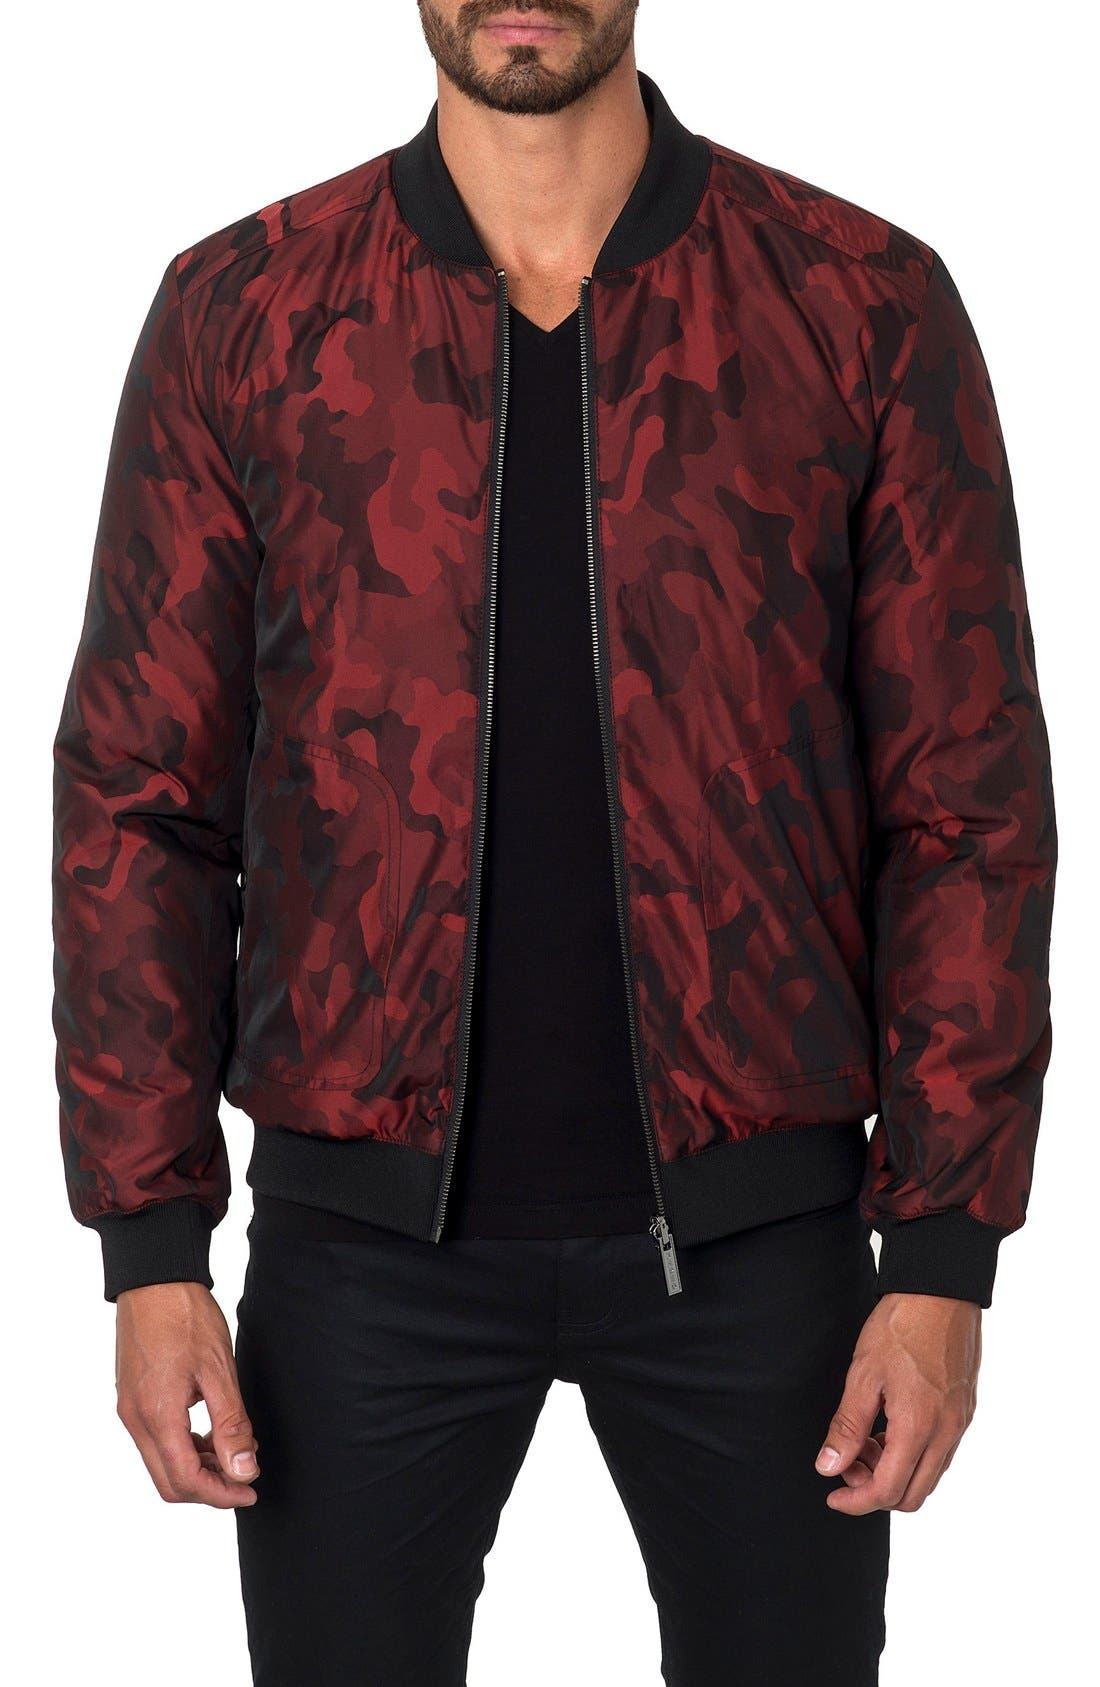 New York Reversible Bomber Jacket,                             Main thumbnail 1, color,                             600